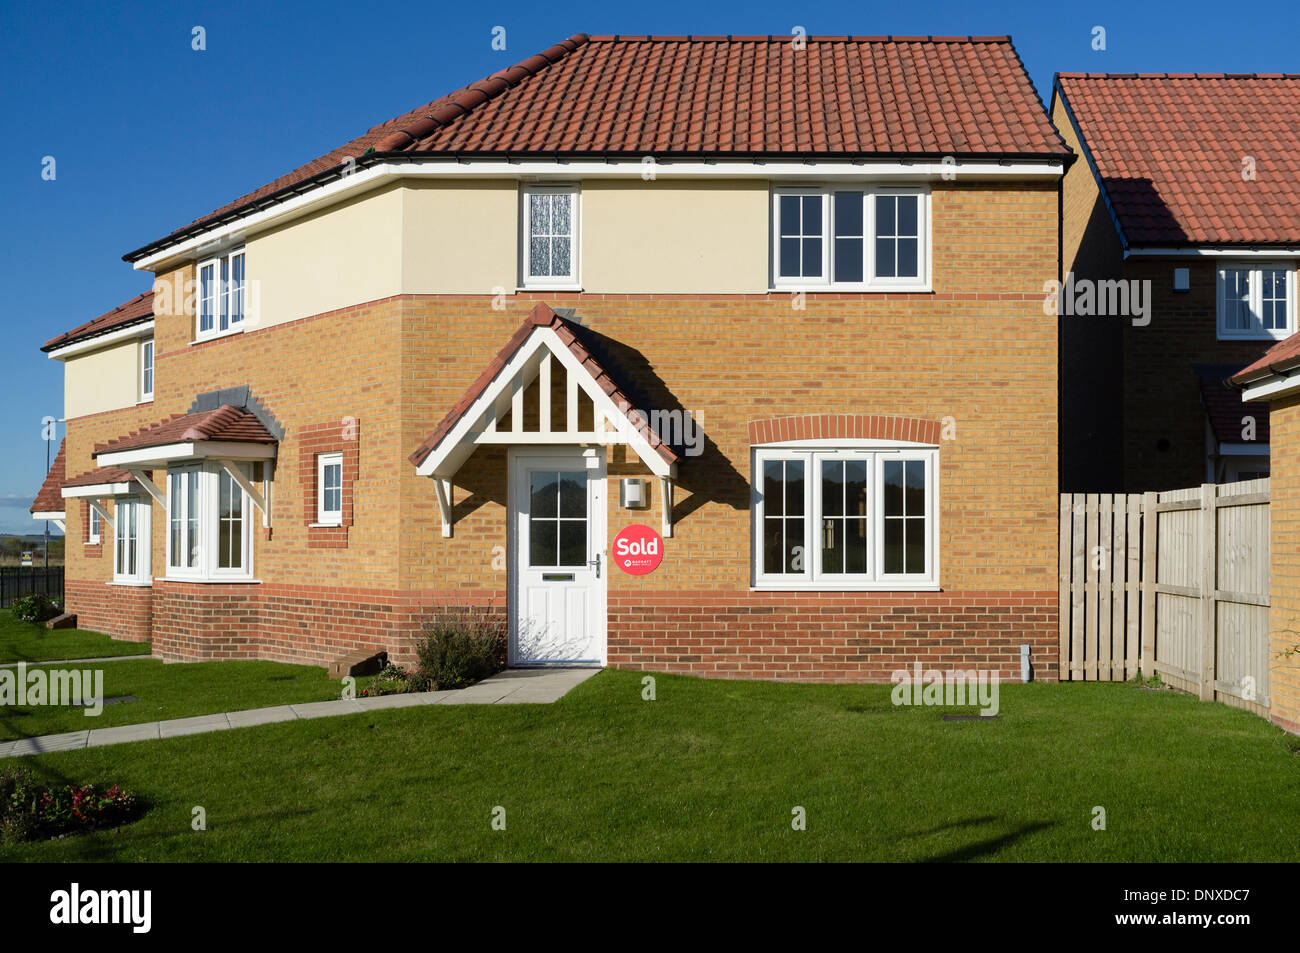 New built Barratt house with Sold sign on wall. - Stock Image